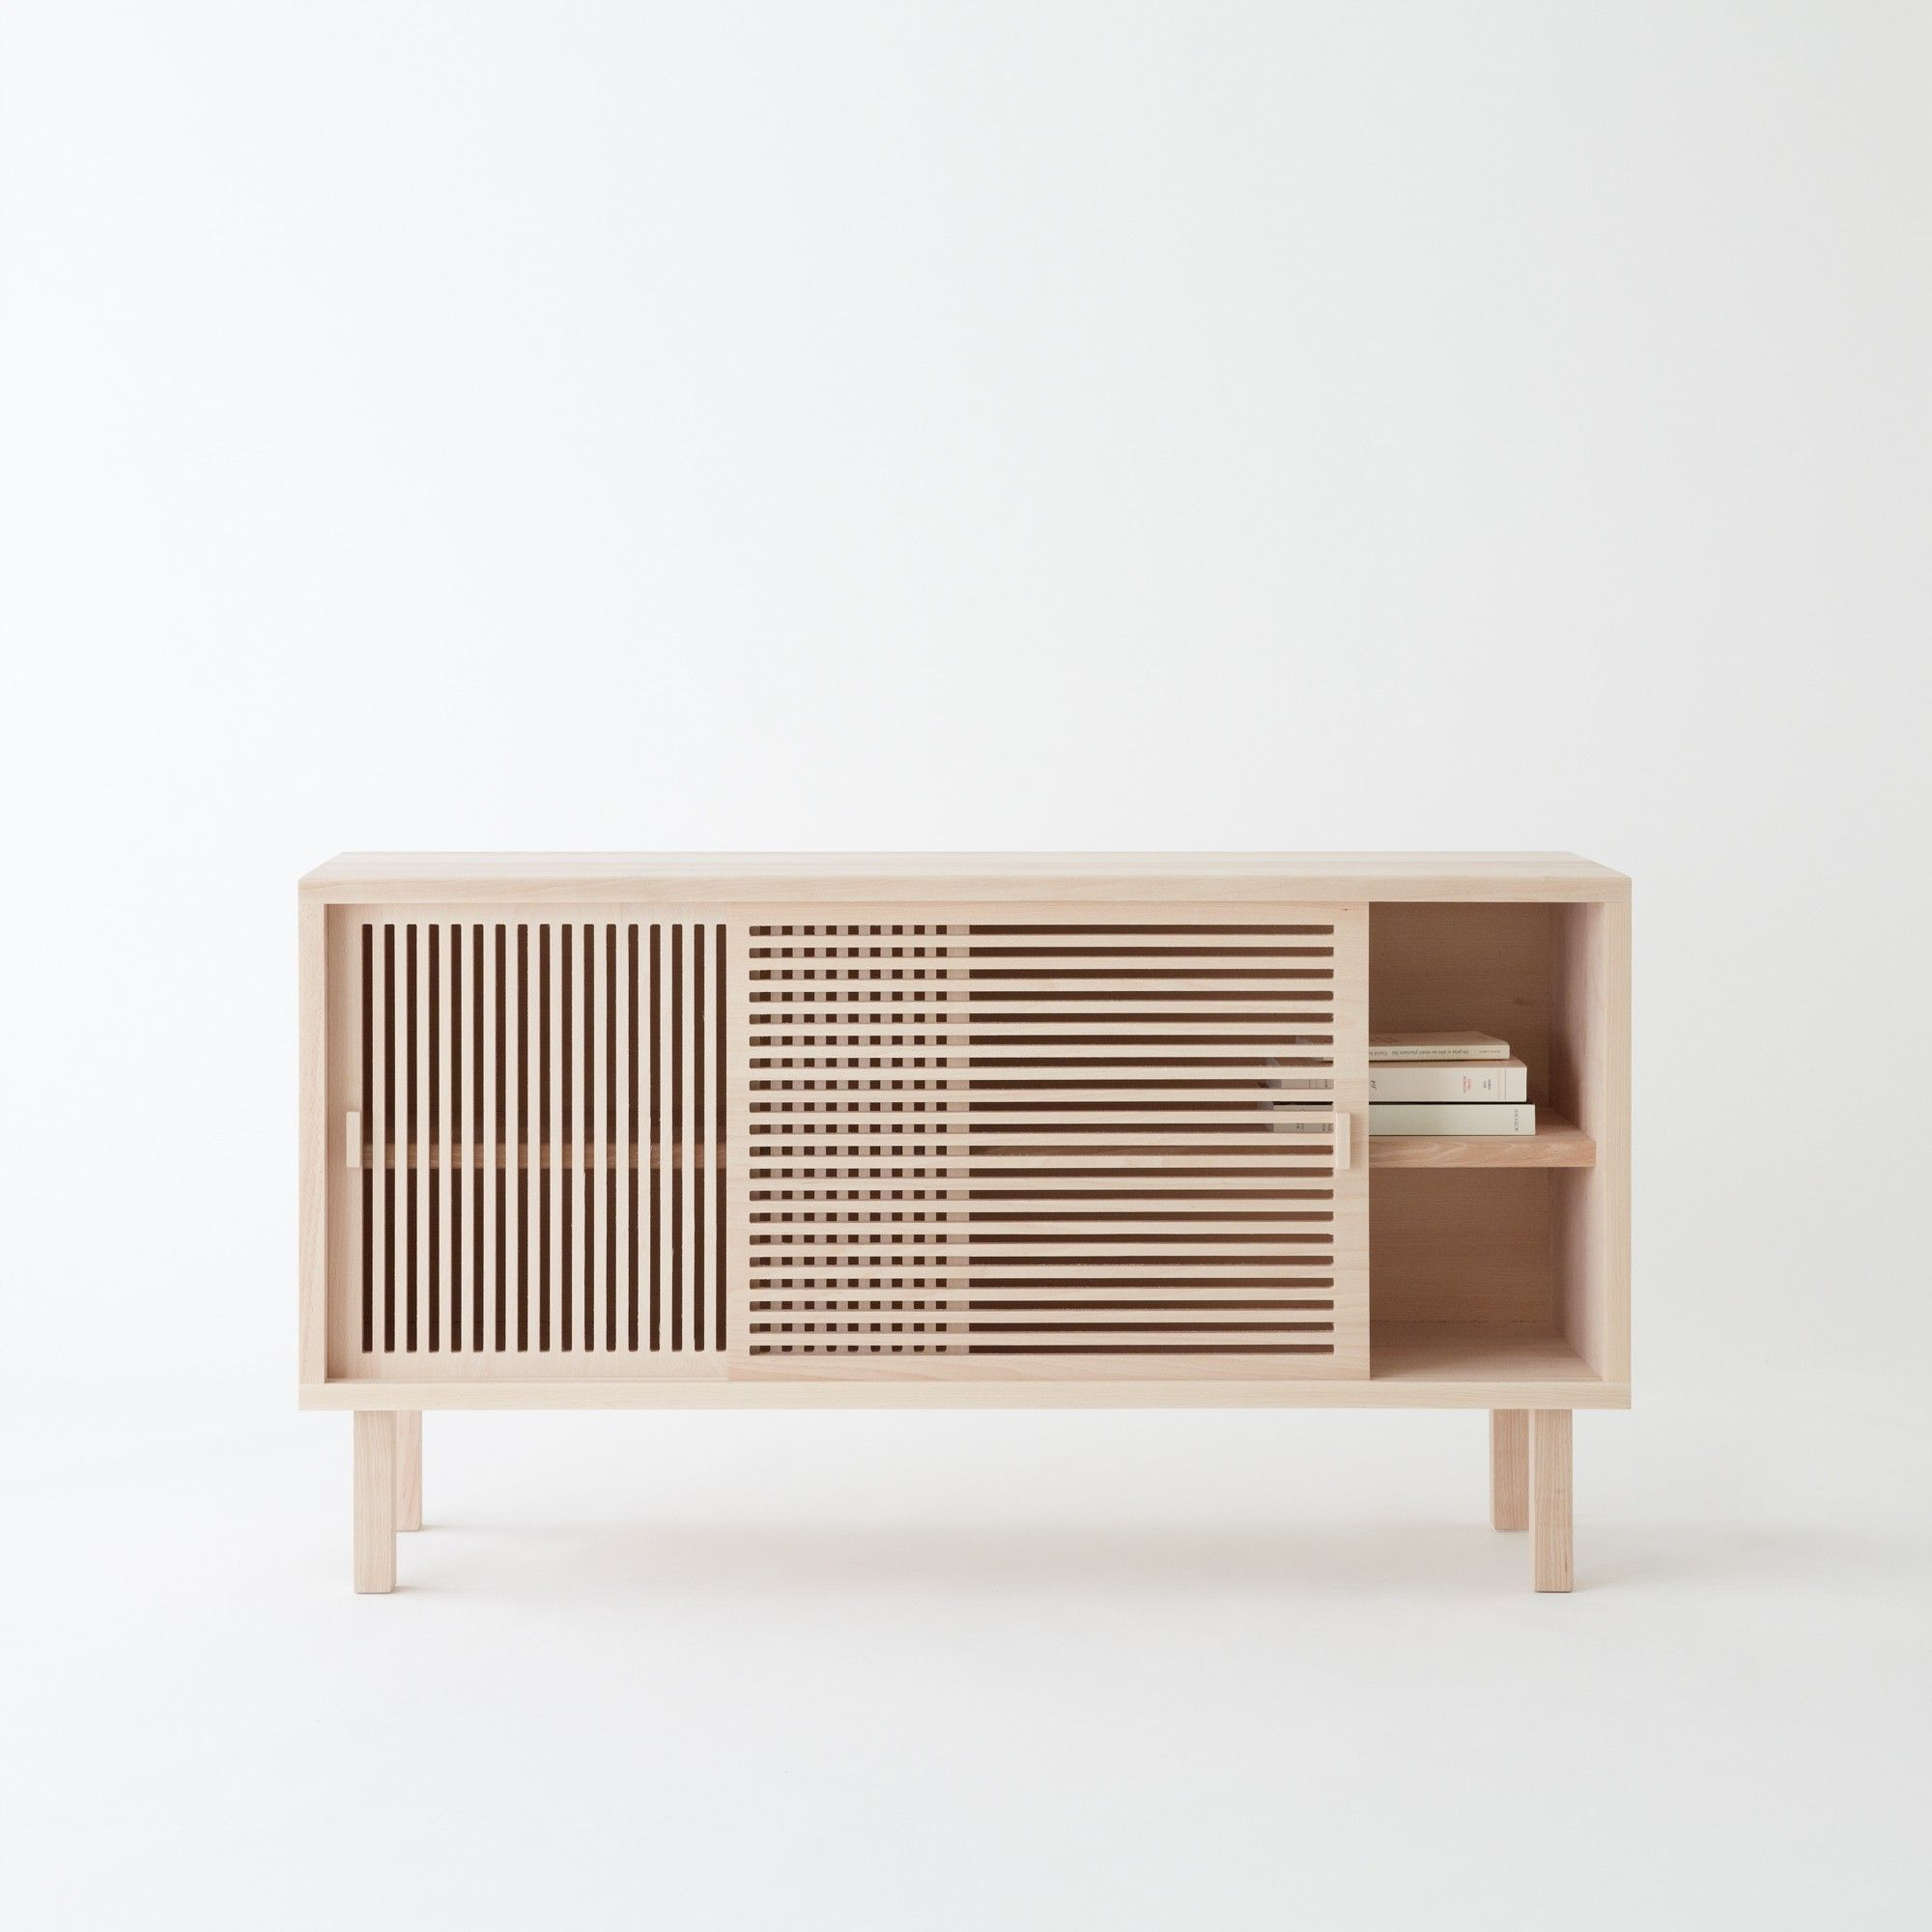 KYOTO raw sideboard in 2018